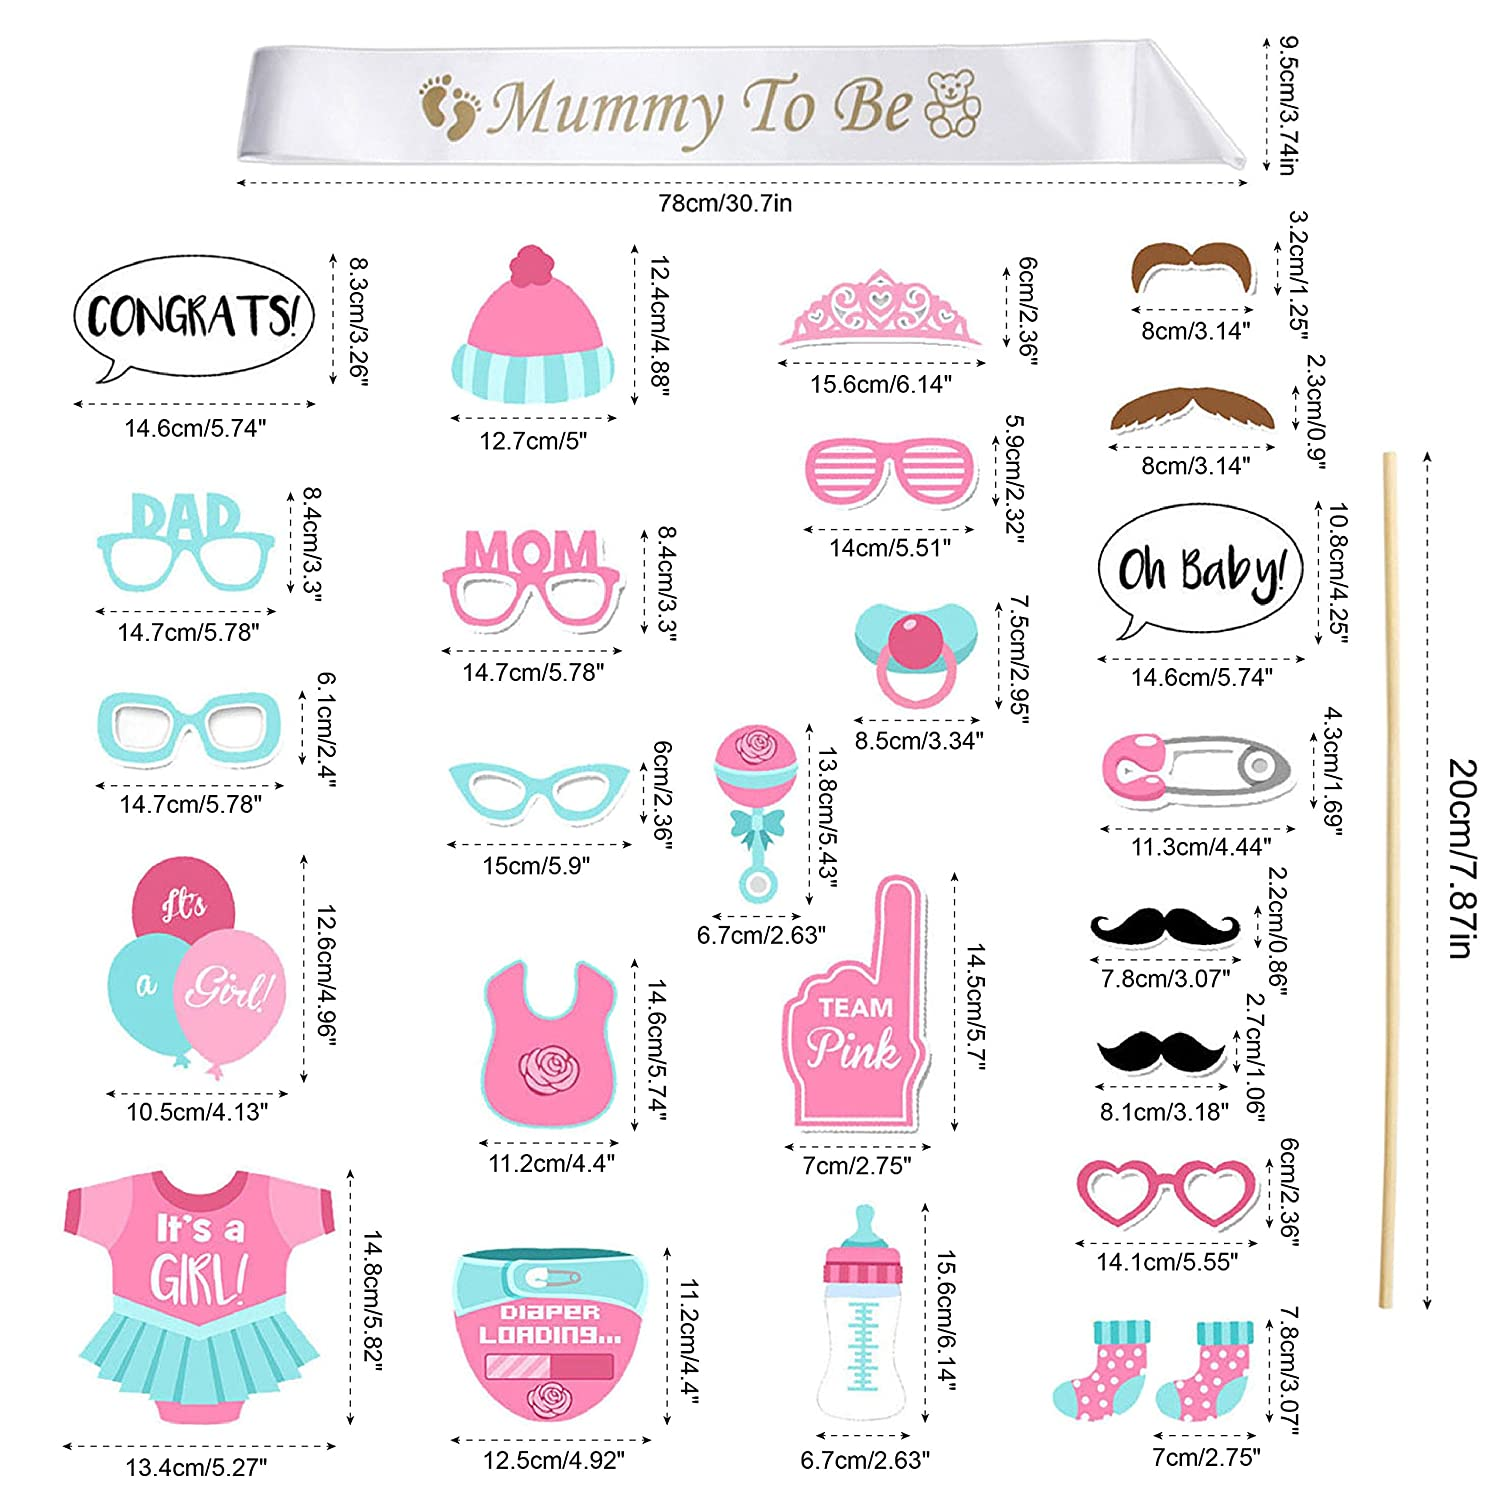 iLoveCos Babydusche Mummy To Be Satin Schärpe Babyparty Baby Shower ...